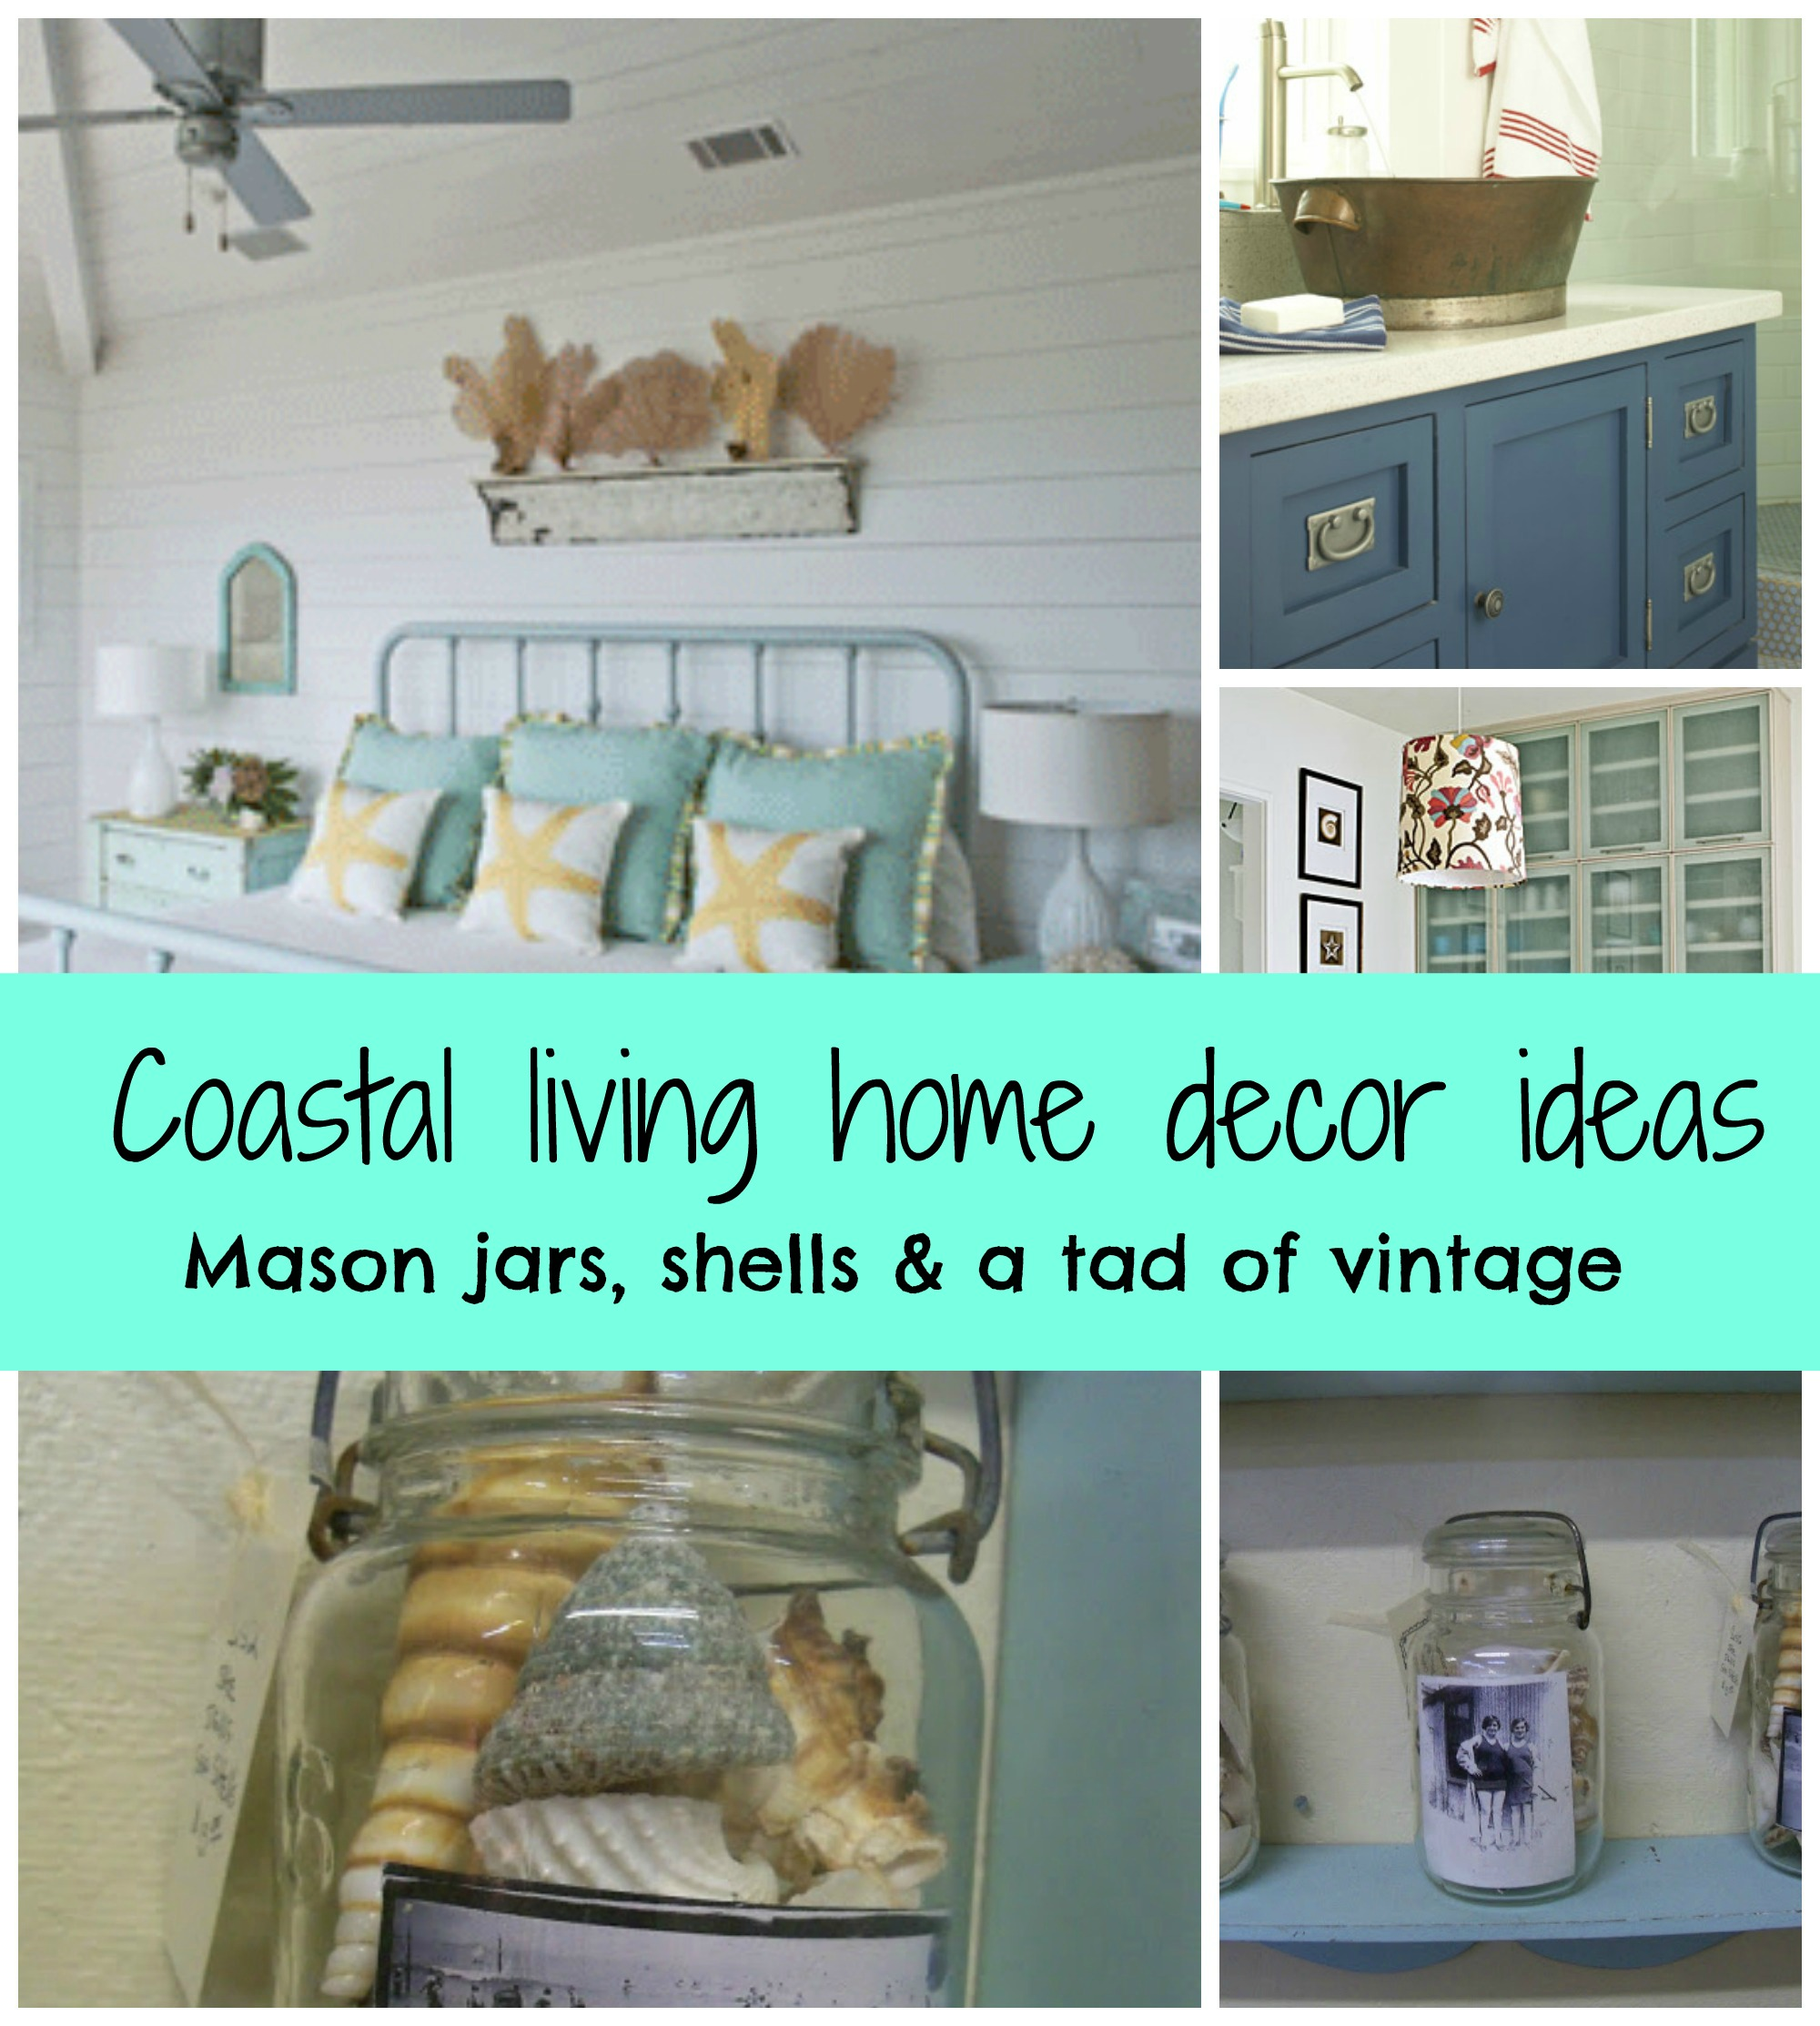 Beach Home Decor Ideas: Coastal Living Nifty Decor Ideas